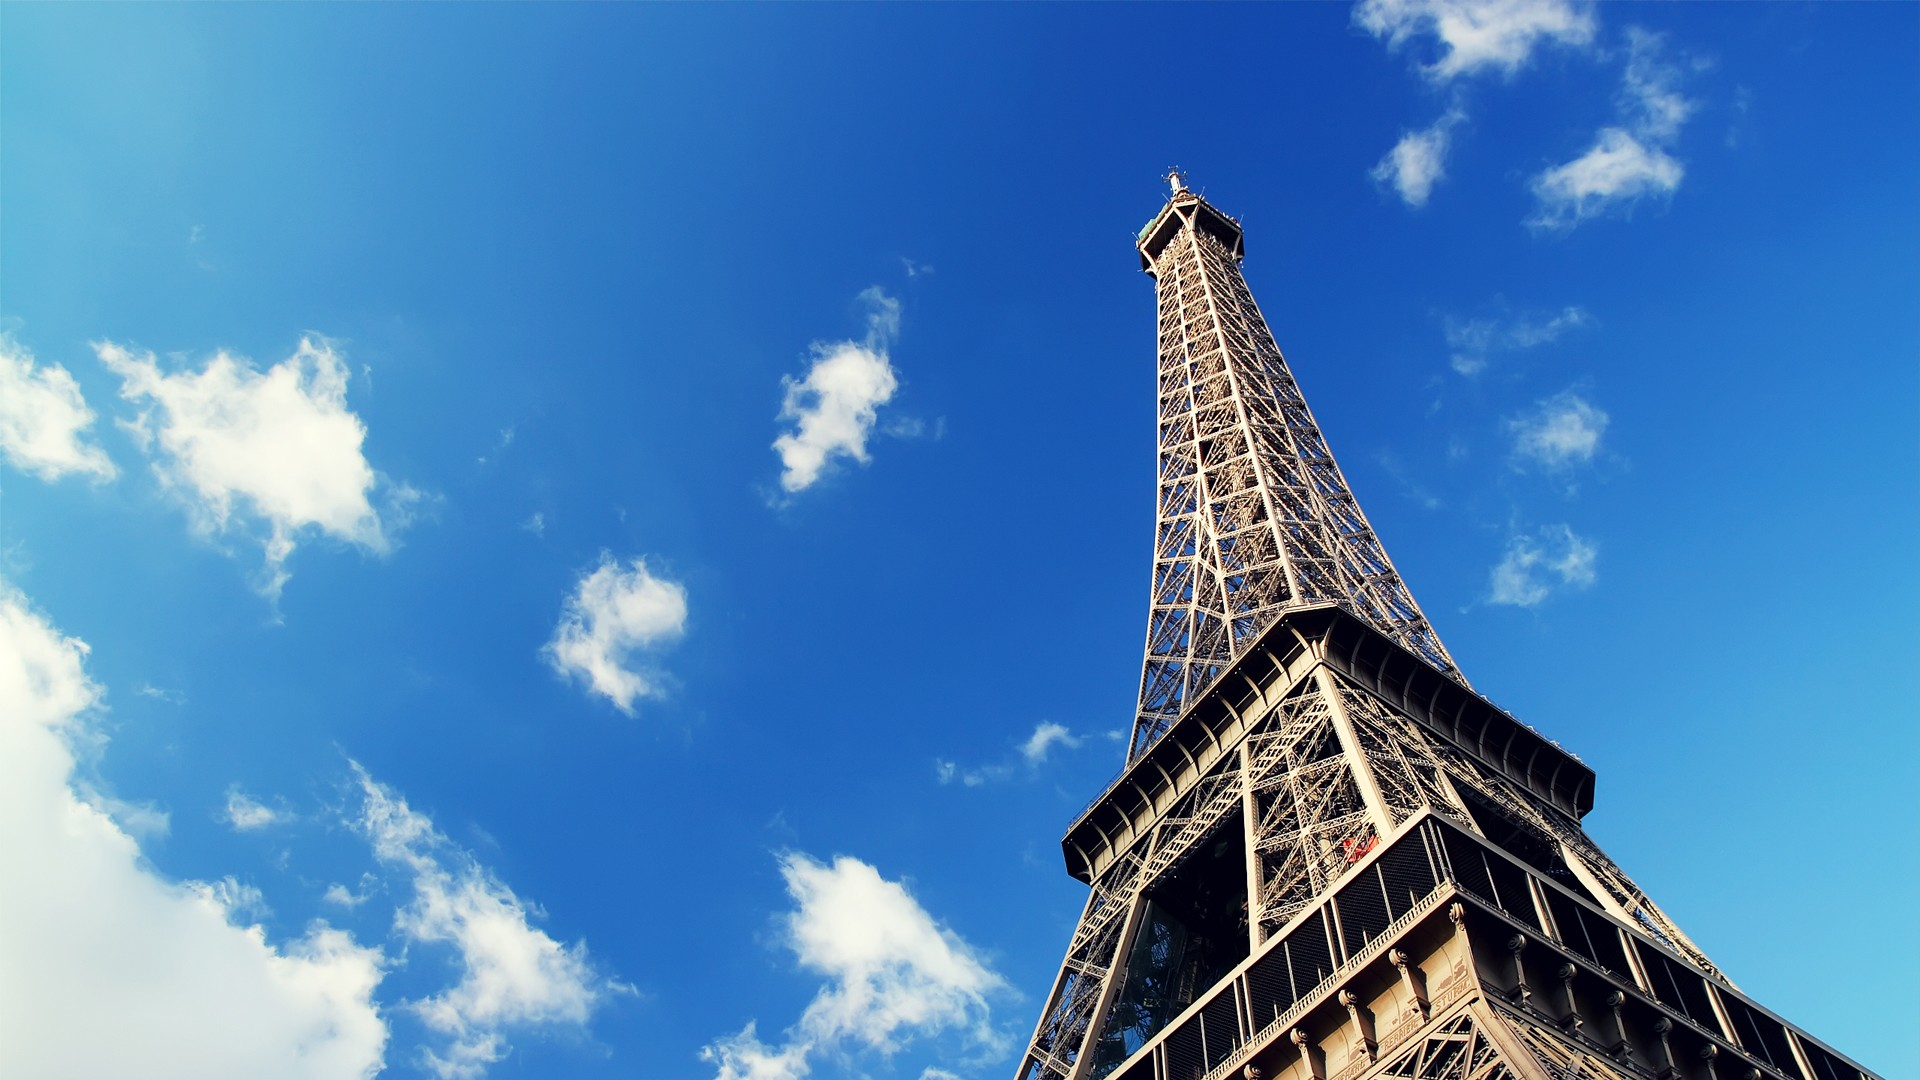 3d Wallpaper Widescreen Eiffel Tower Paris Wallpapers Hd Wallpapers Id 10798